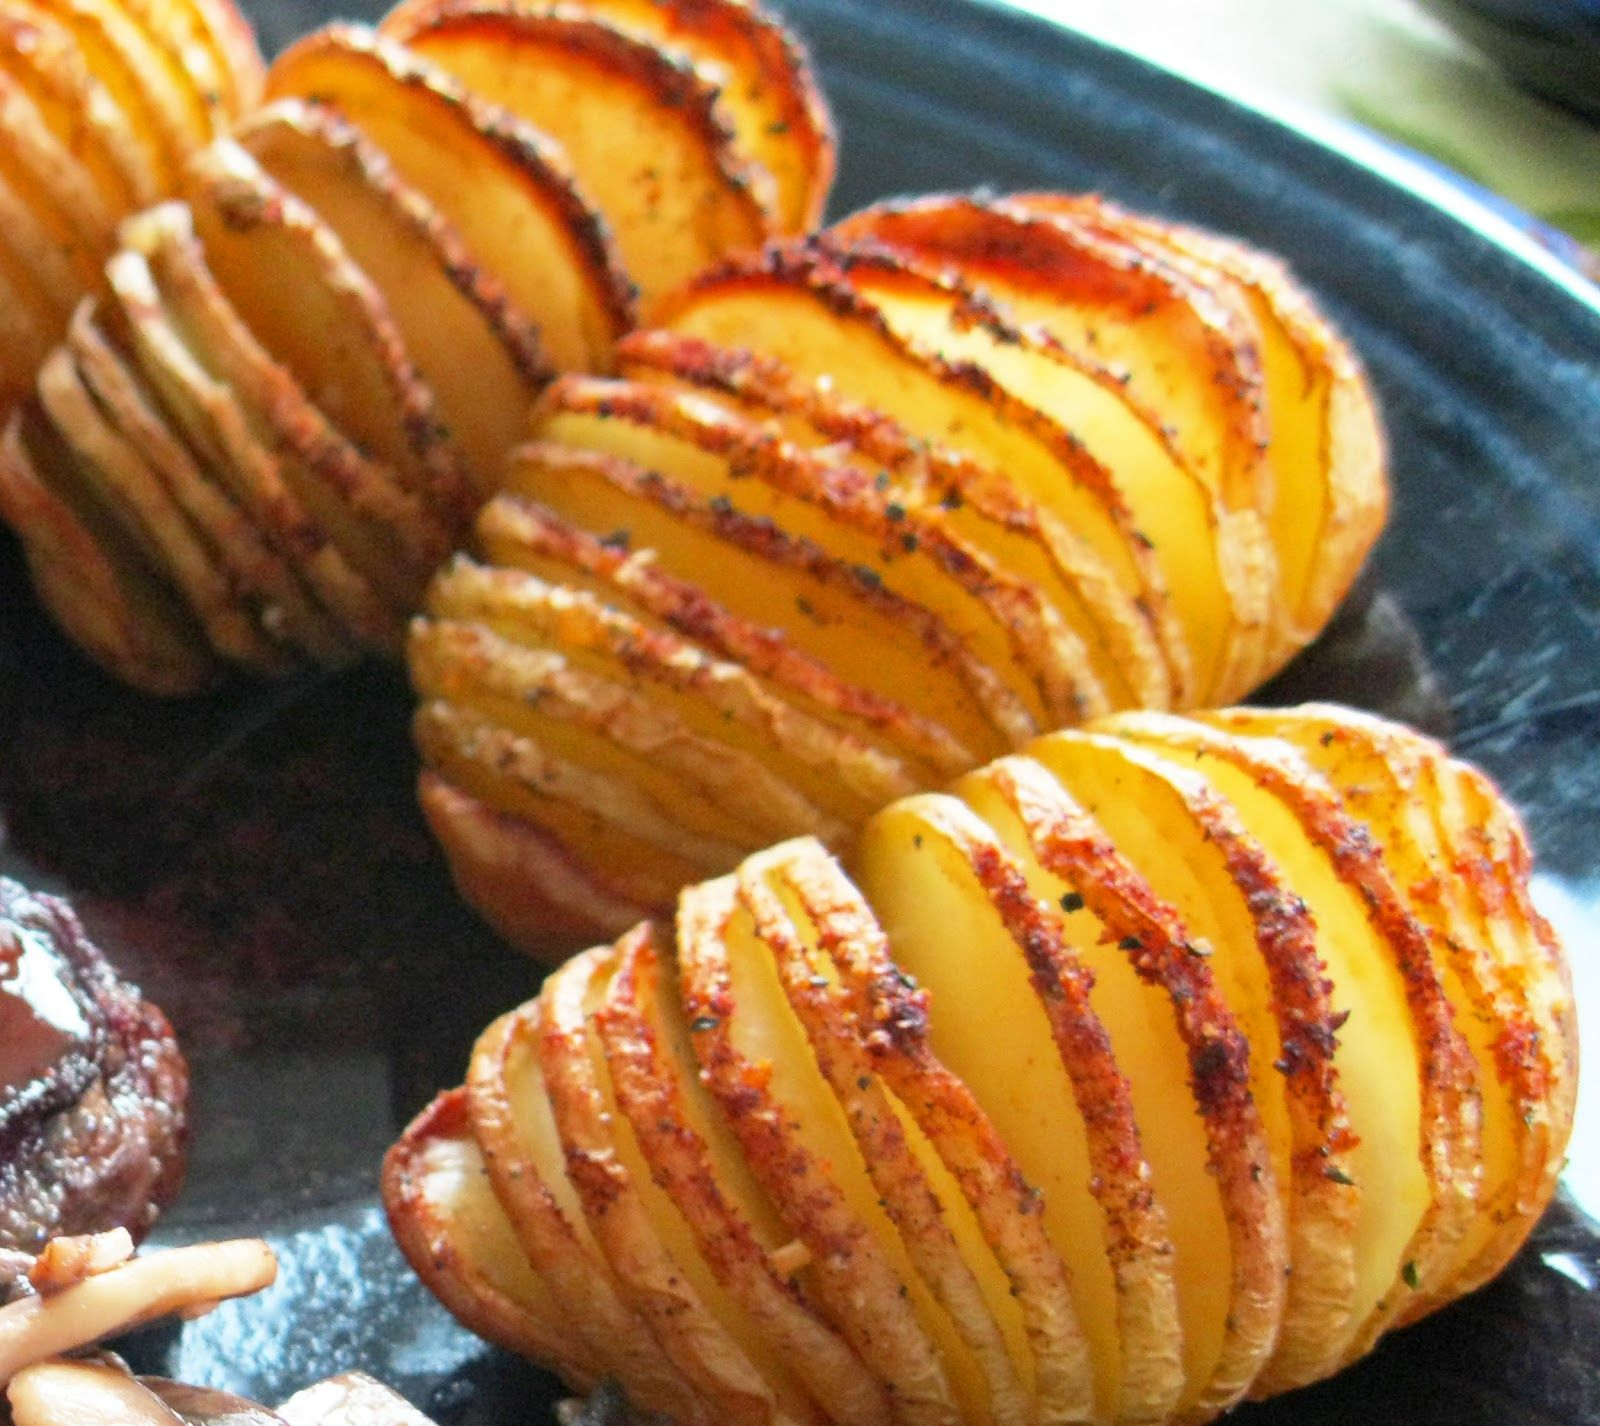 Healthy You: Sliced Baked Potatoes Sprayed With Olive Oil